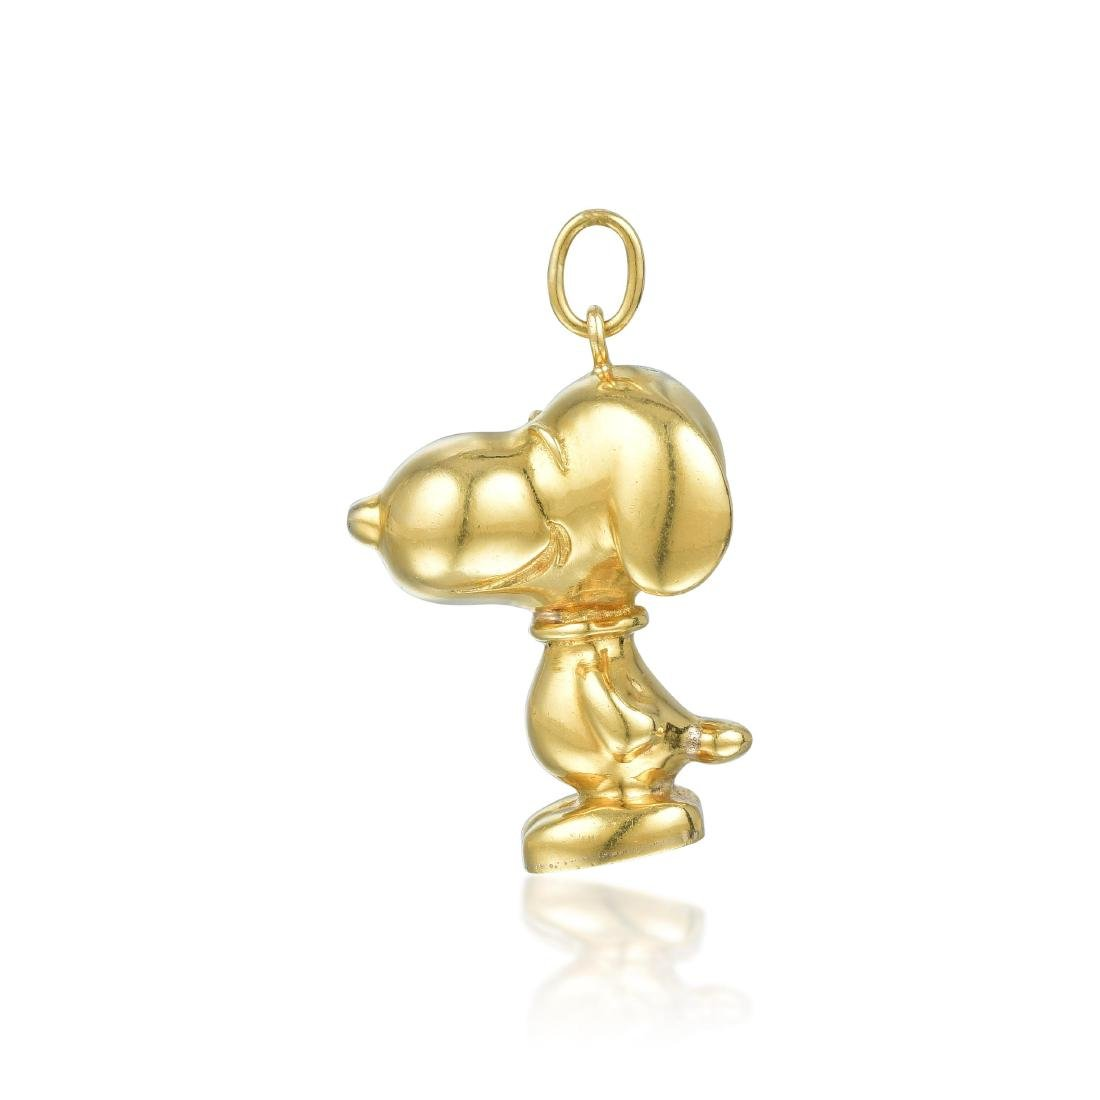 Cartier Gold Snoopy Pendant - 3